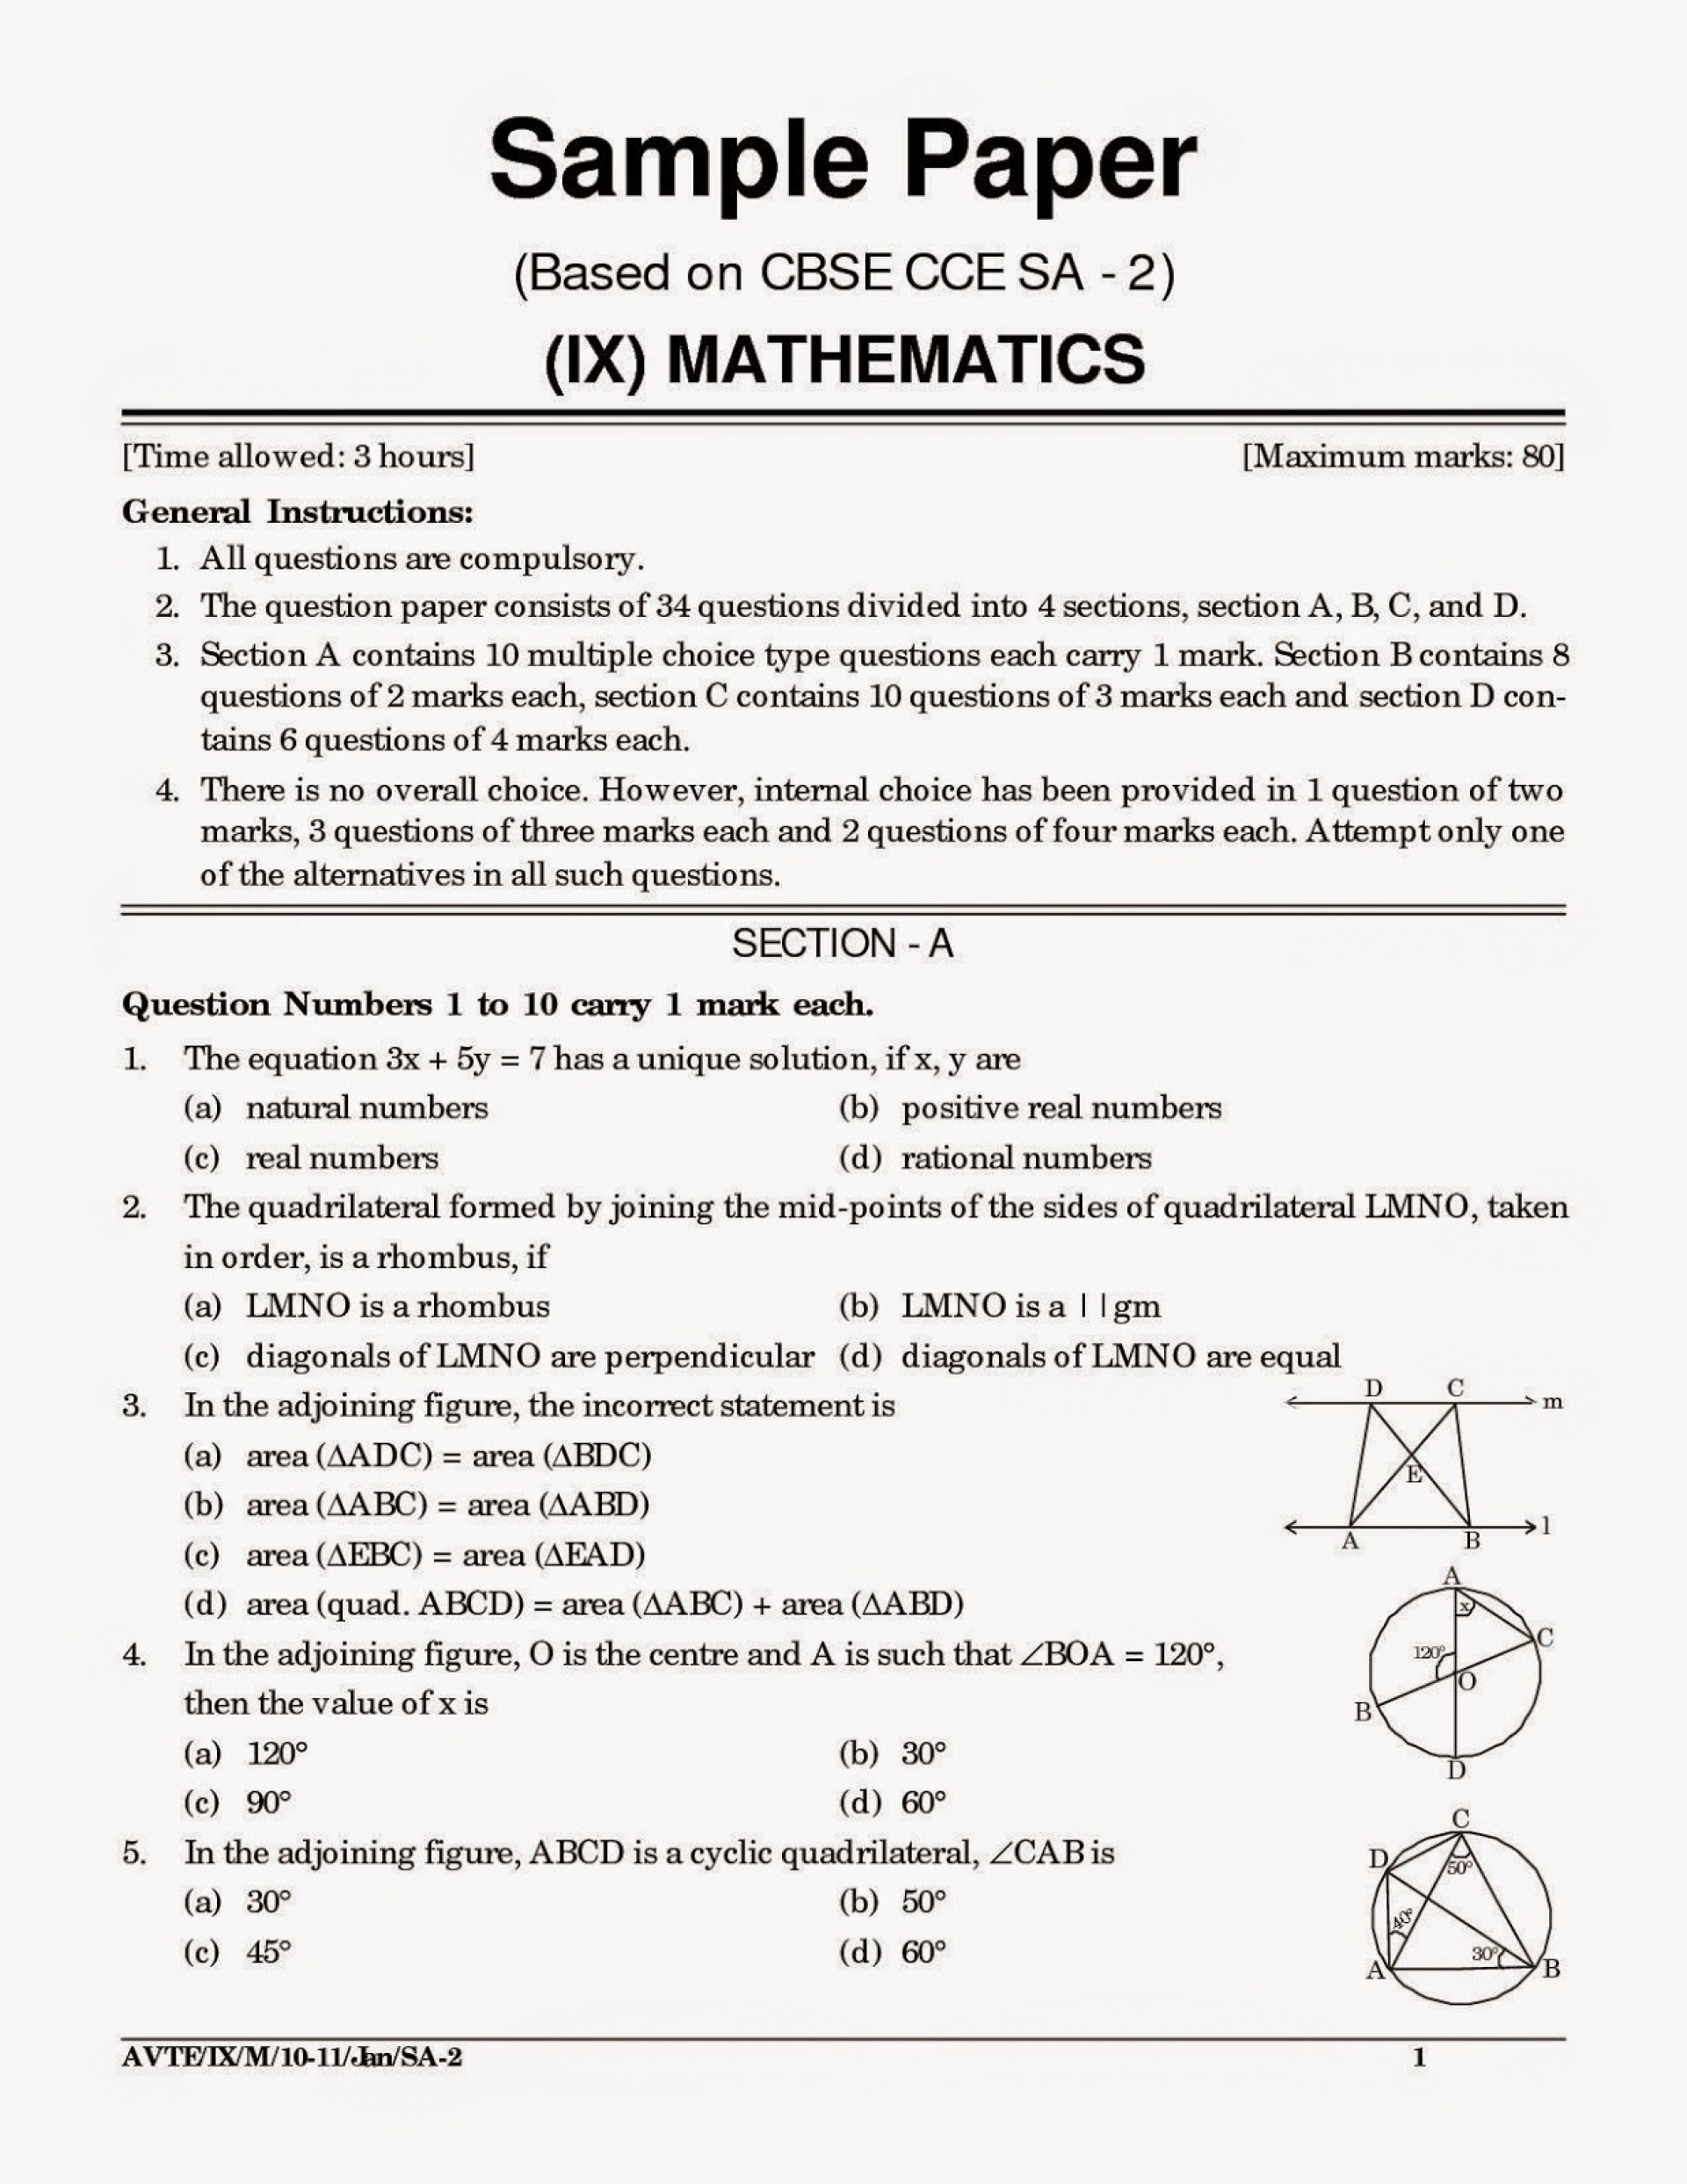 002 Essay Example Cbsesamplepapersforclass10mathematicsandscience Jpg Topics For Year Archaicawful 9 Questions Grade Olds Igcse 1920